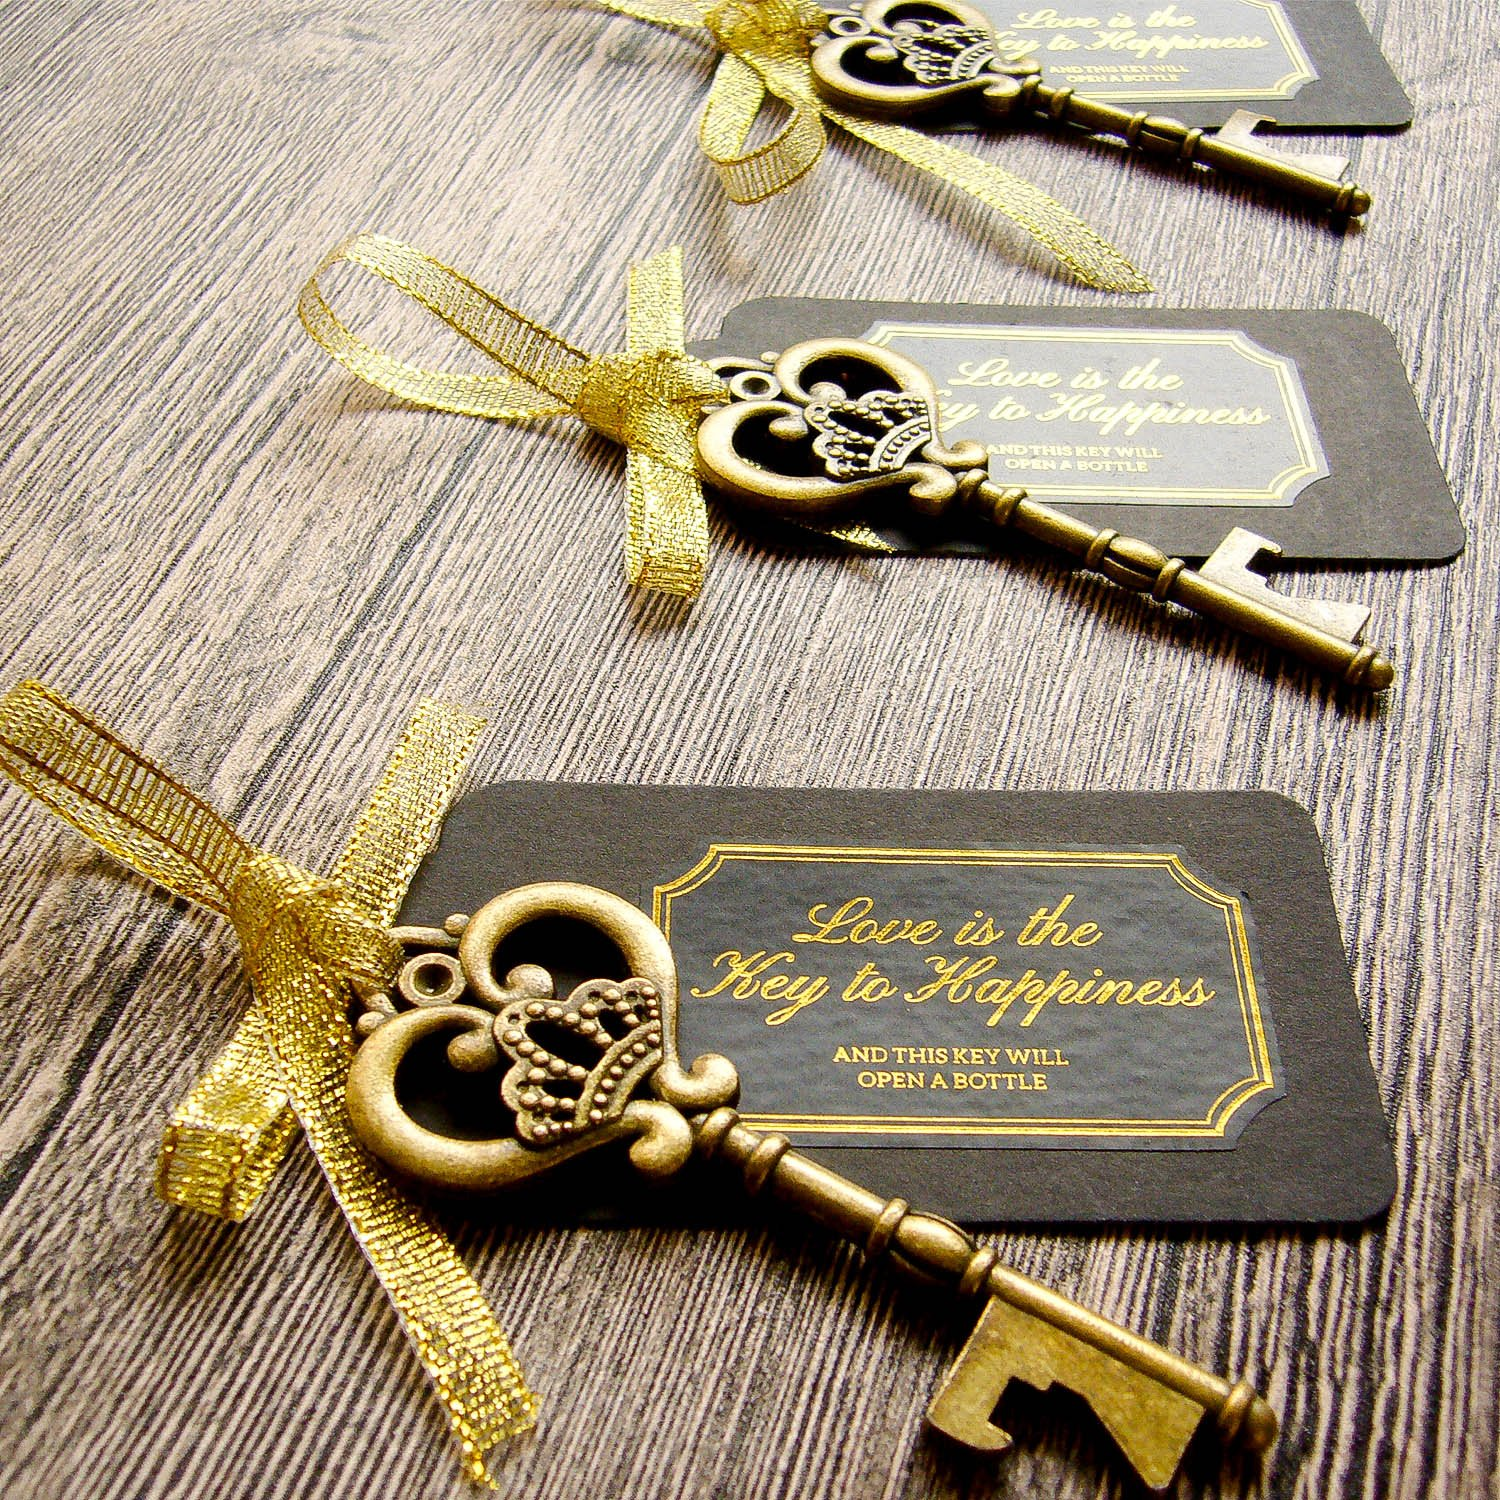 52 Heavy-Duty Metal Large Skeleton Key Bottle Opener Wedding Favor with Tag (Chalkboard Look-alike), FREE Gold Ribbon and Stickers, Vintage Bridal Shower Favors Bottle Opener for Guests (Antique Gold) EFOXMOKO